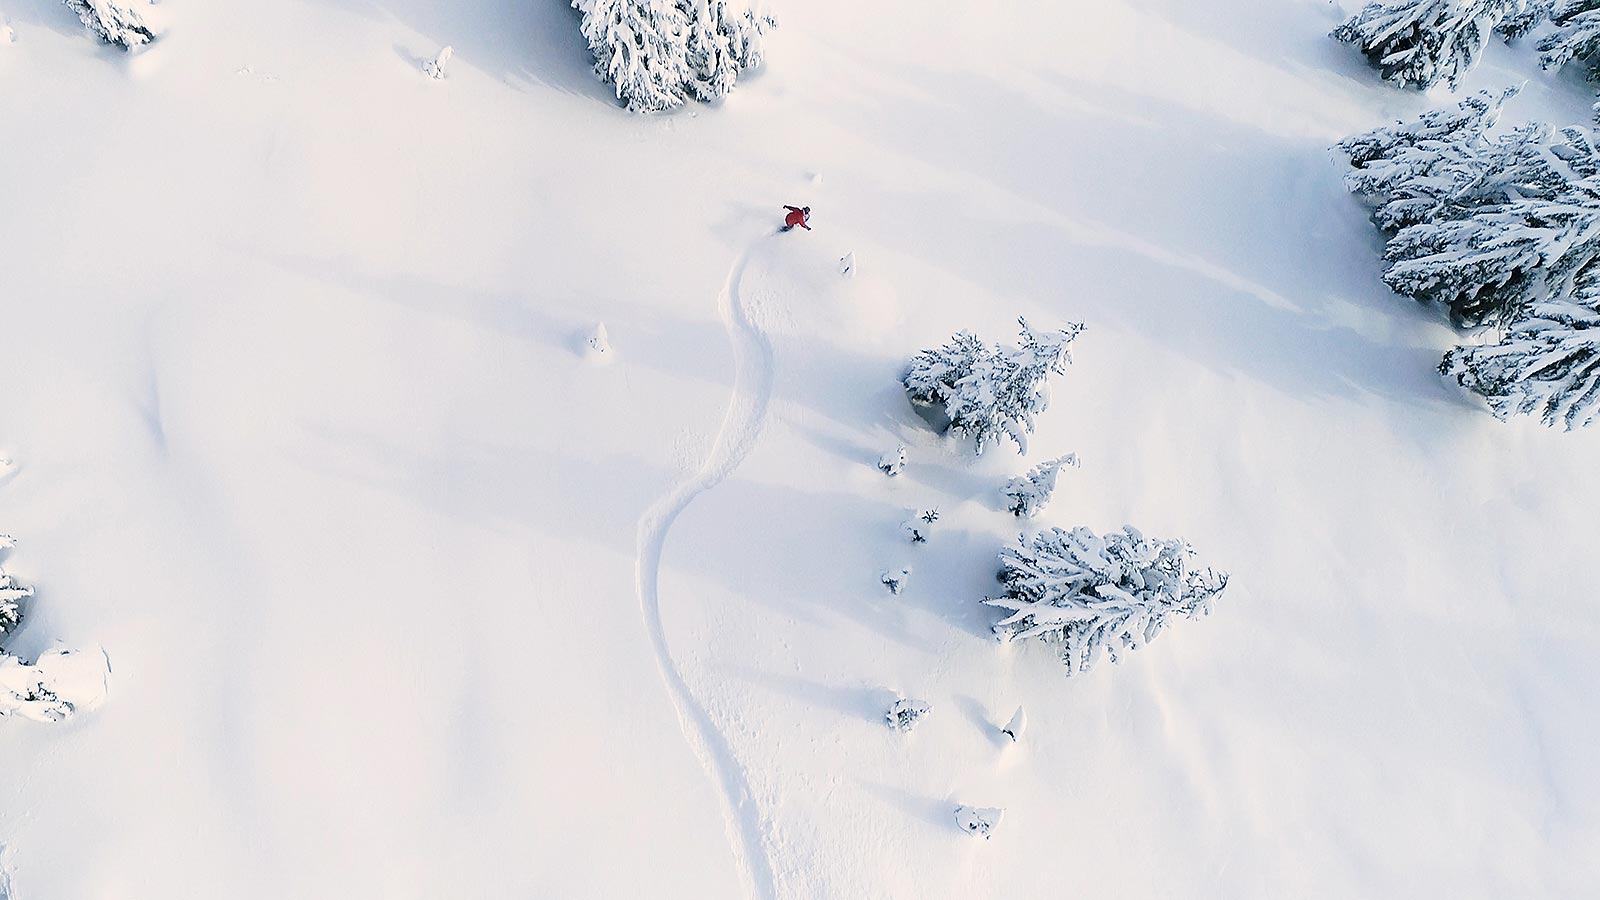 Aerial photograph of a skier off-piste in deep snow